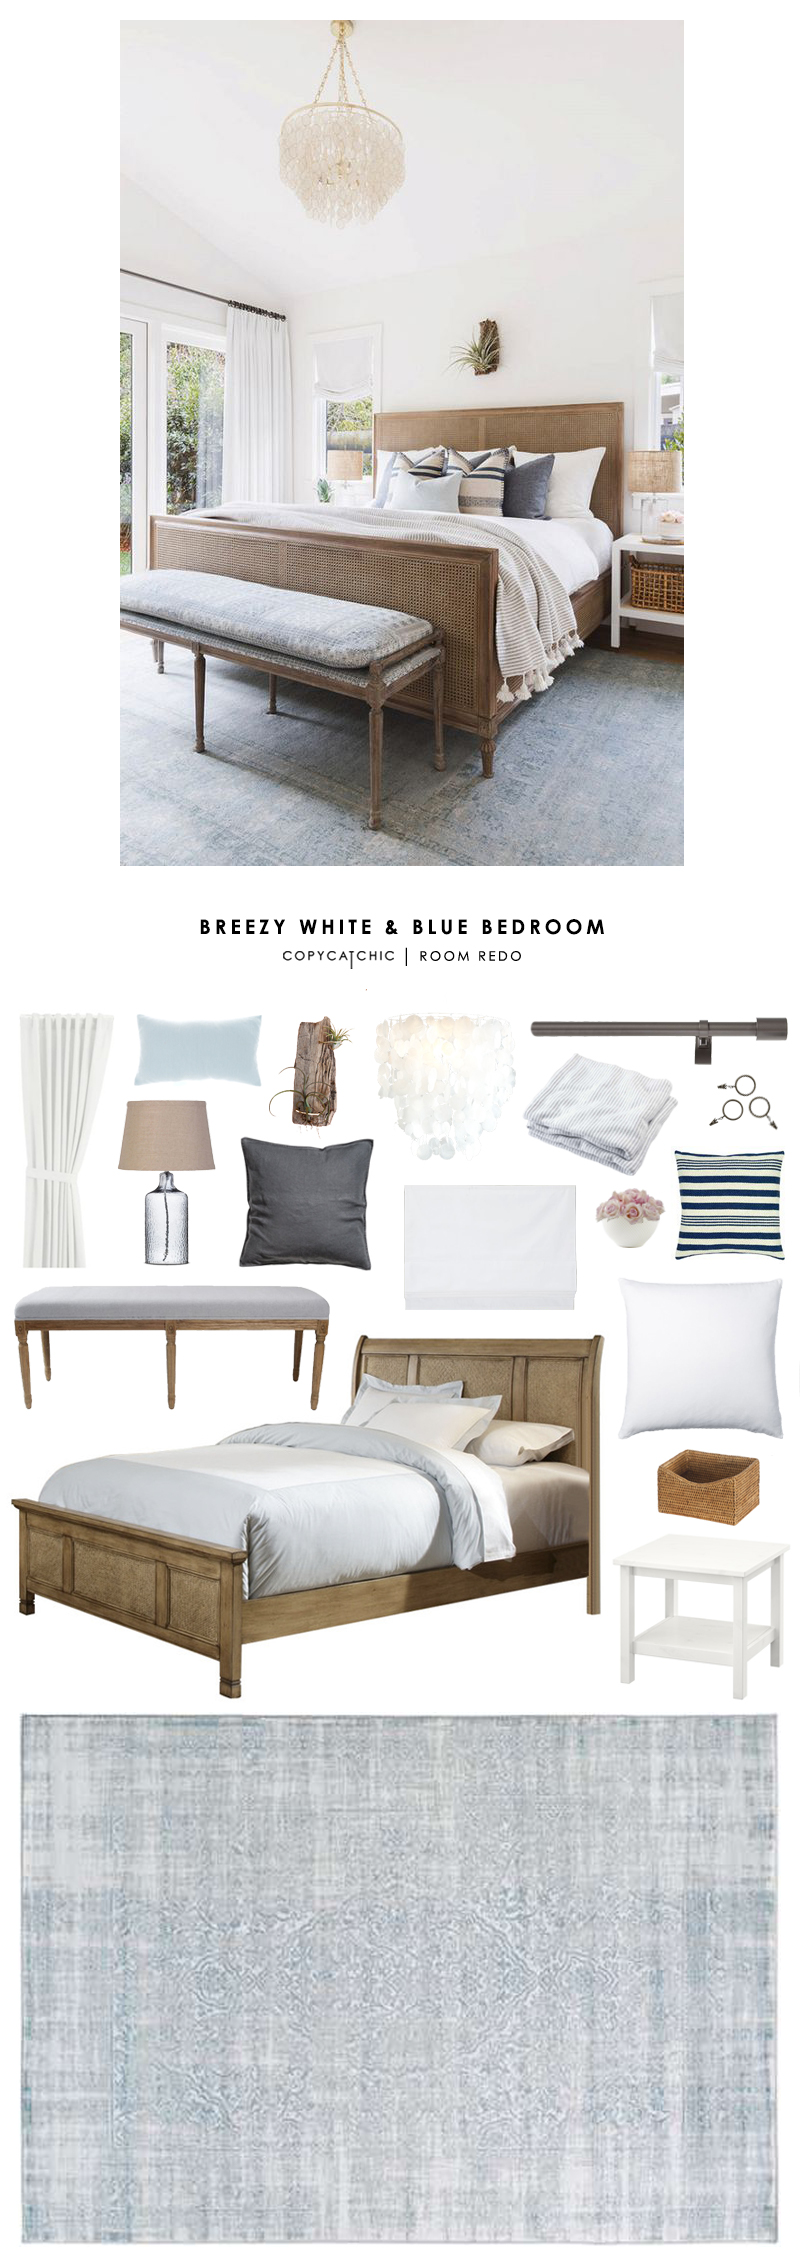 copy cat chic room redo breezy white and blue bedroom copycatchic. Black Bedroom Furniture Sets. Home Design Ideas